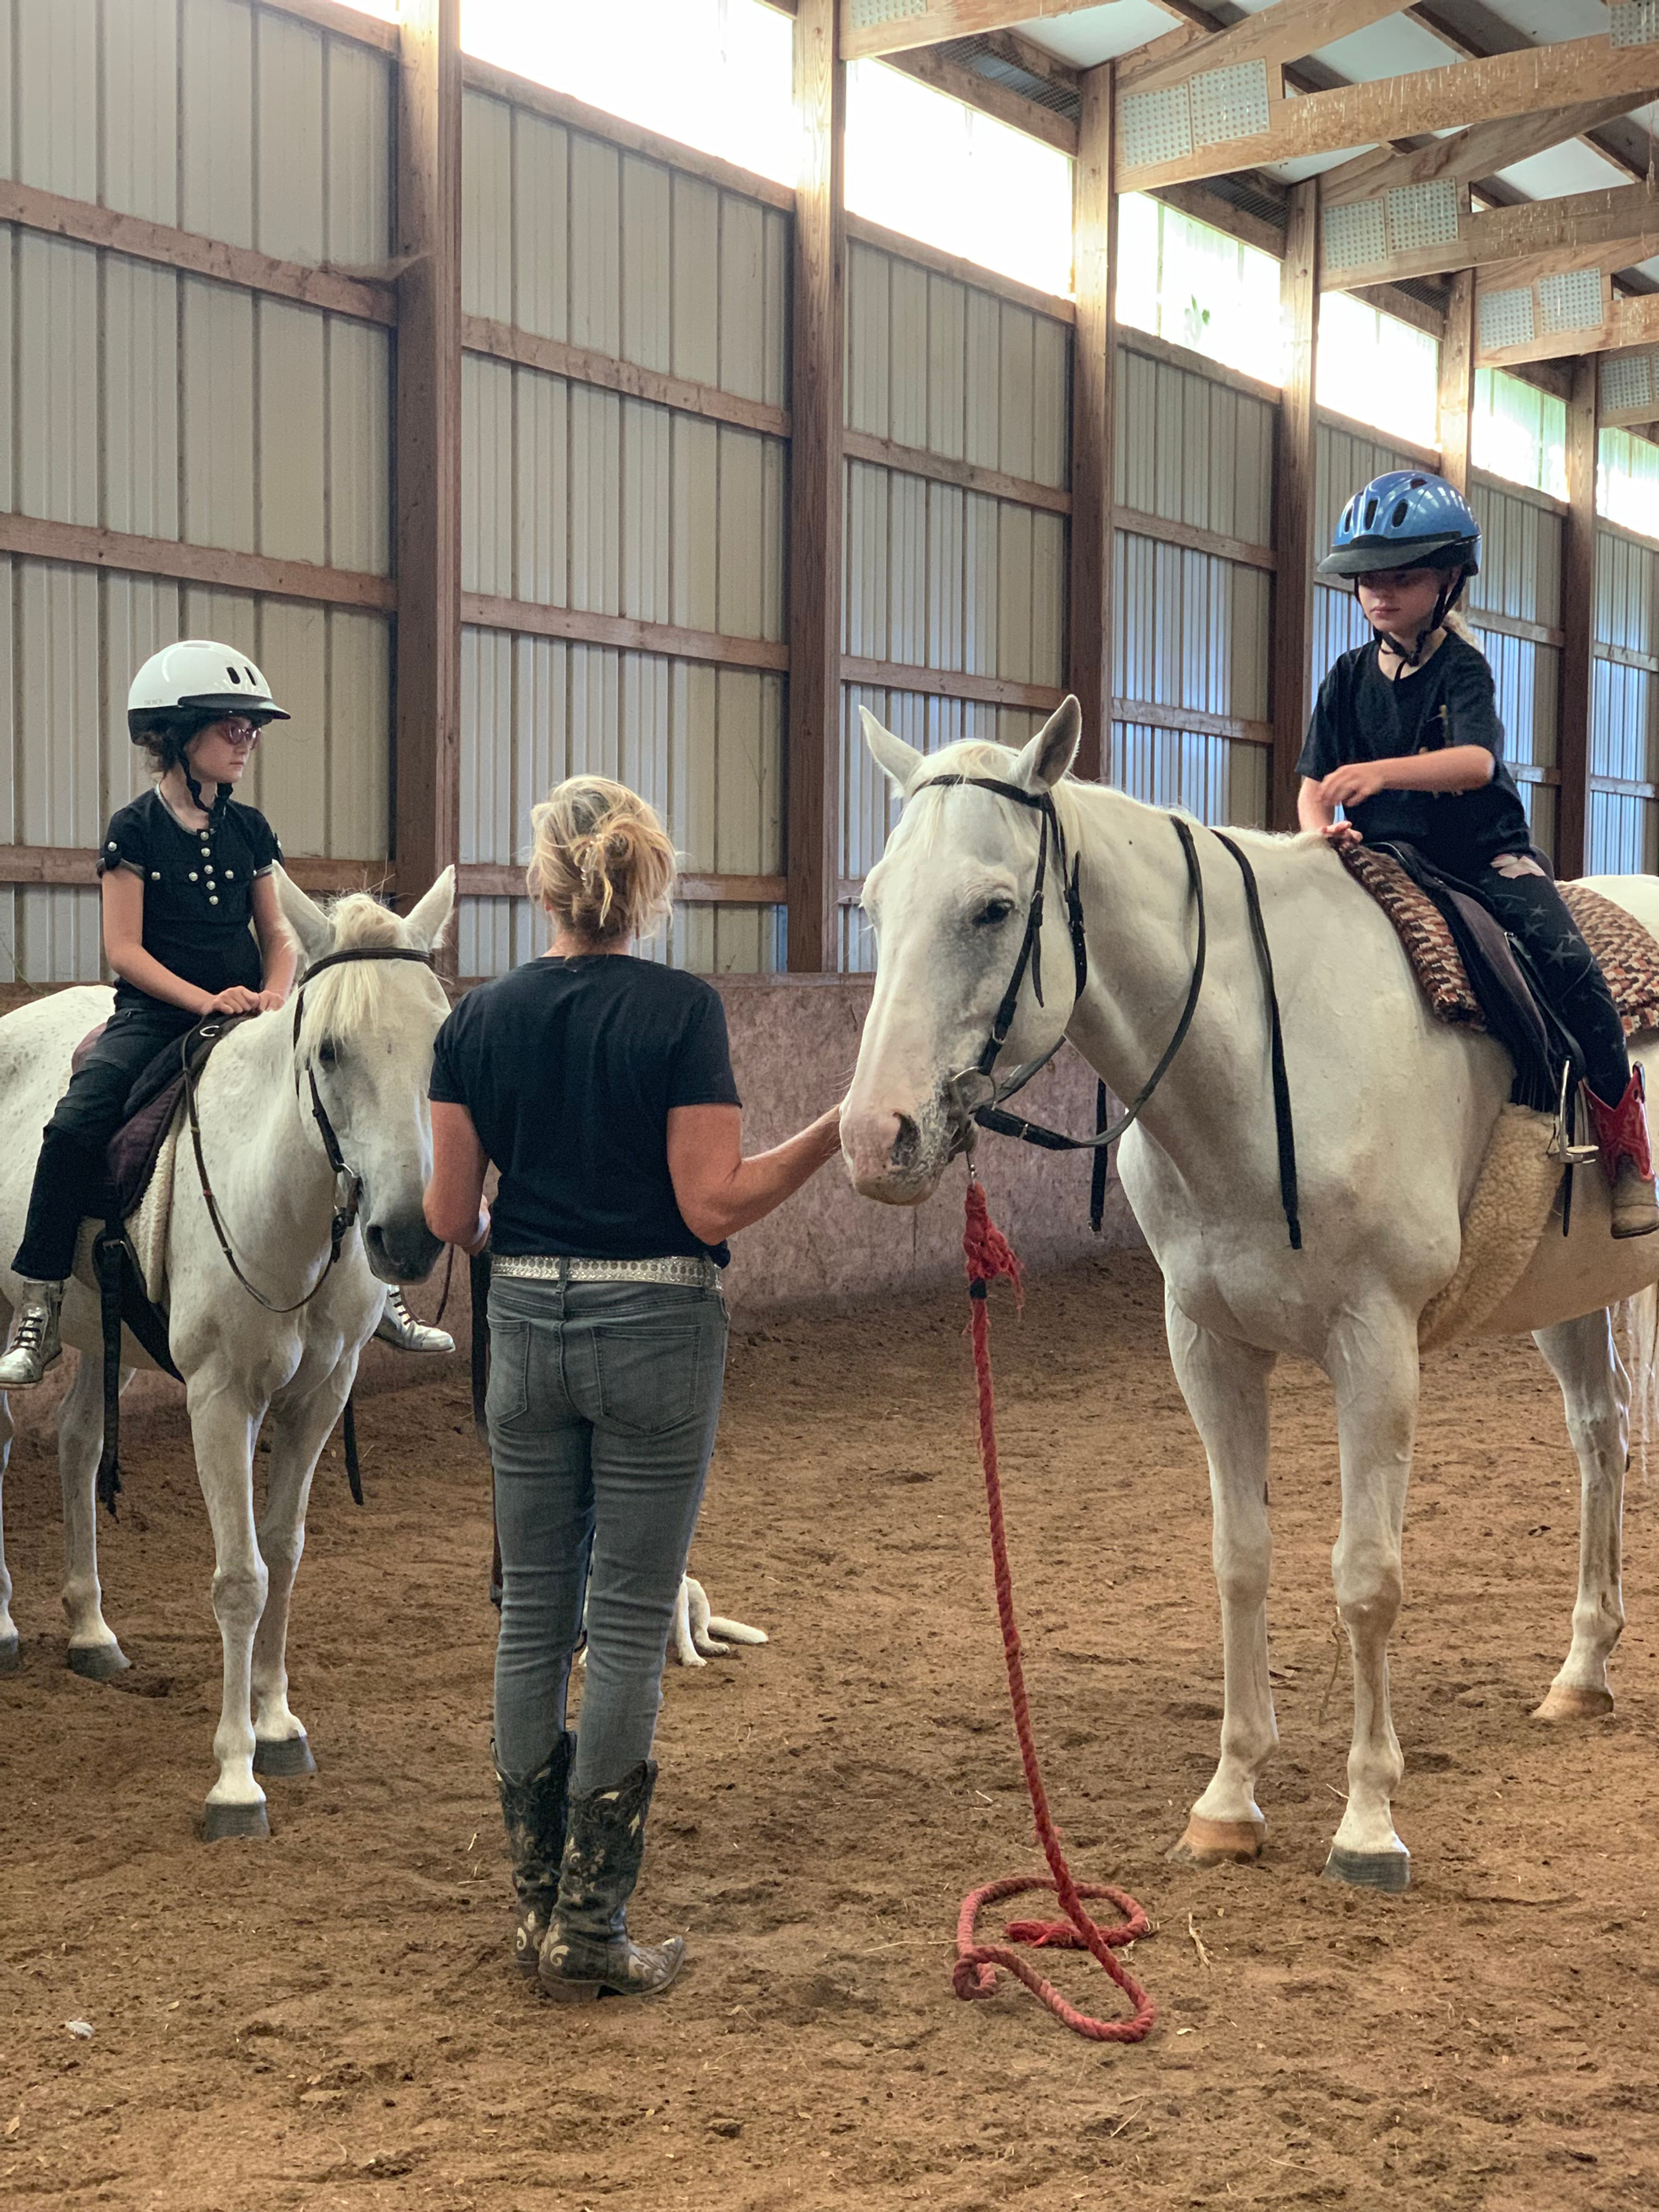 Children's Riding Lesson for Two